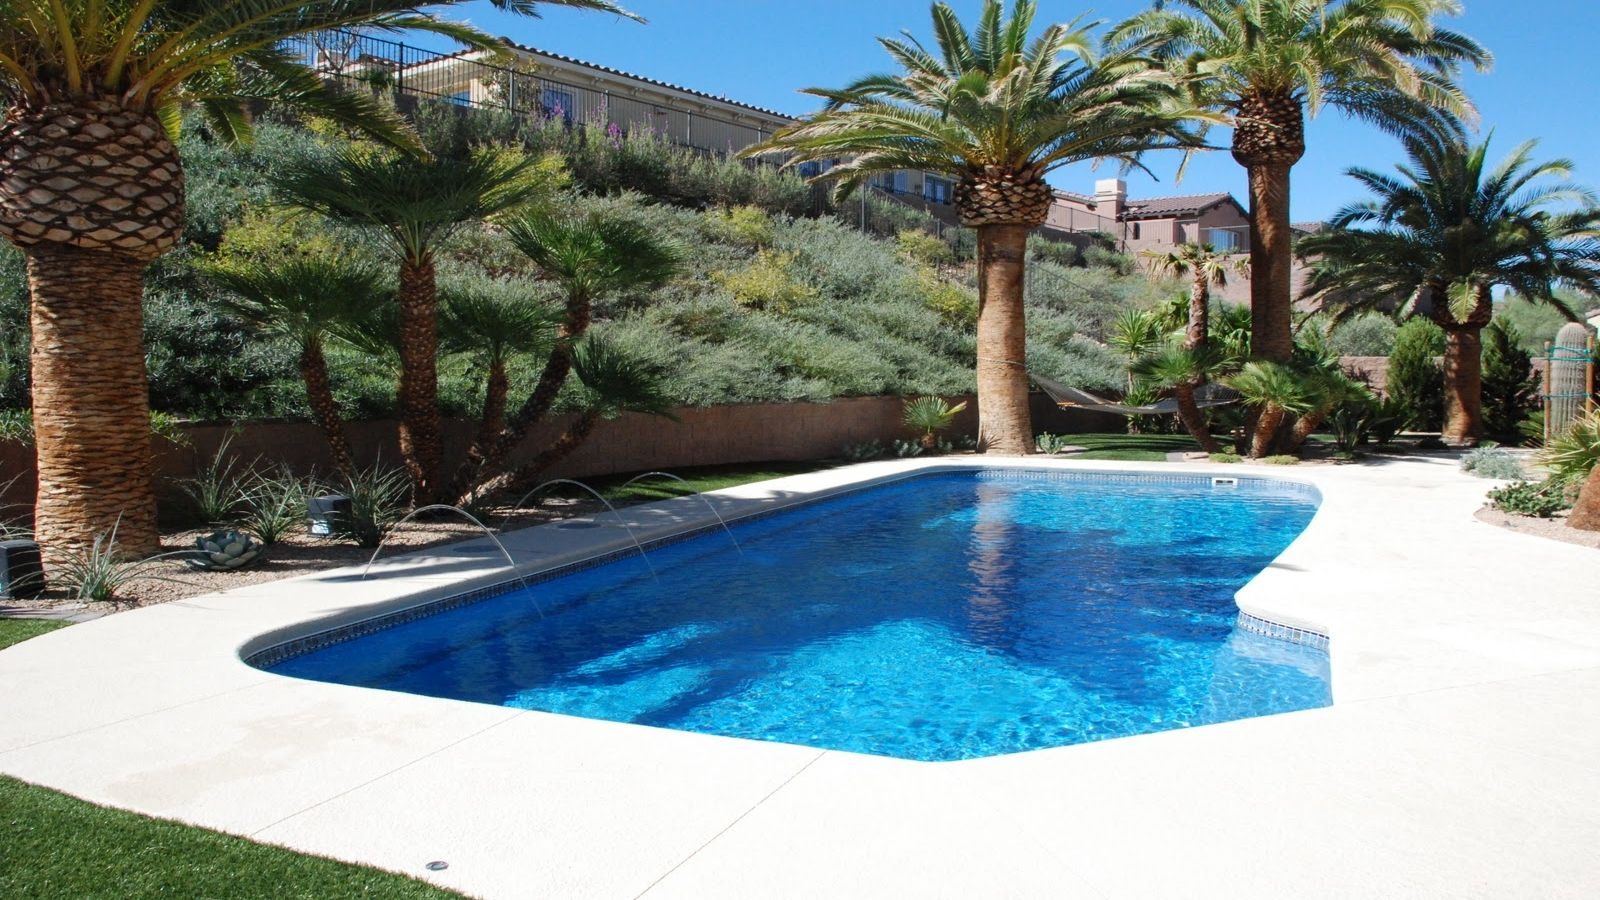 Pool Man Pools Spa Is A Dedicated Company Into Construction Of New